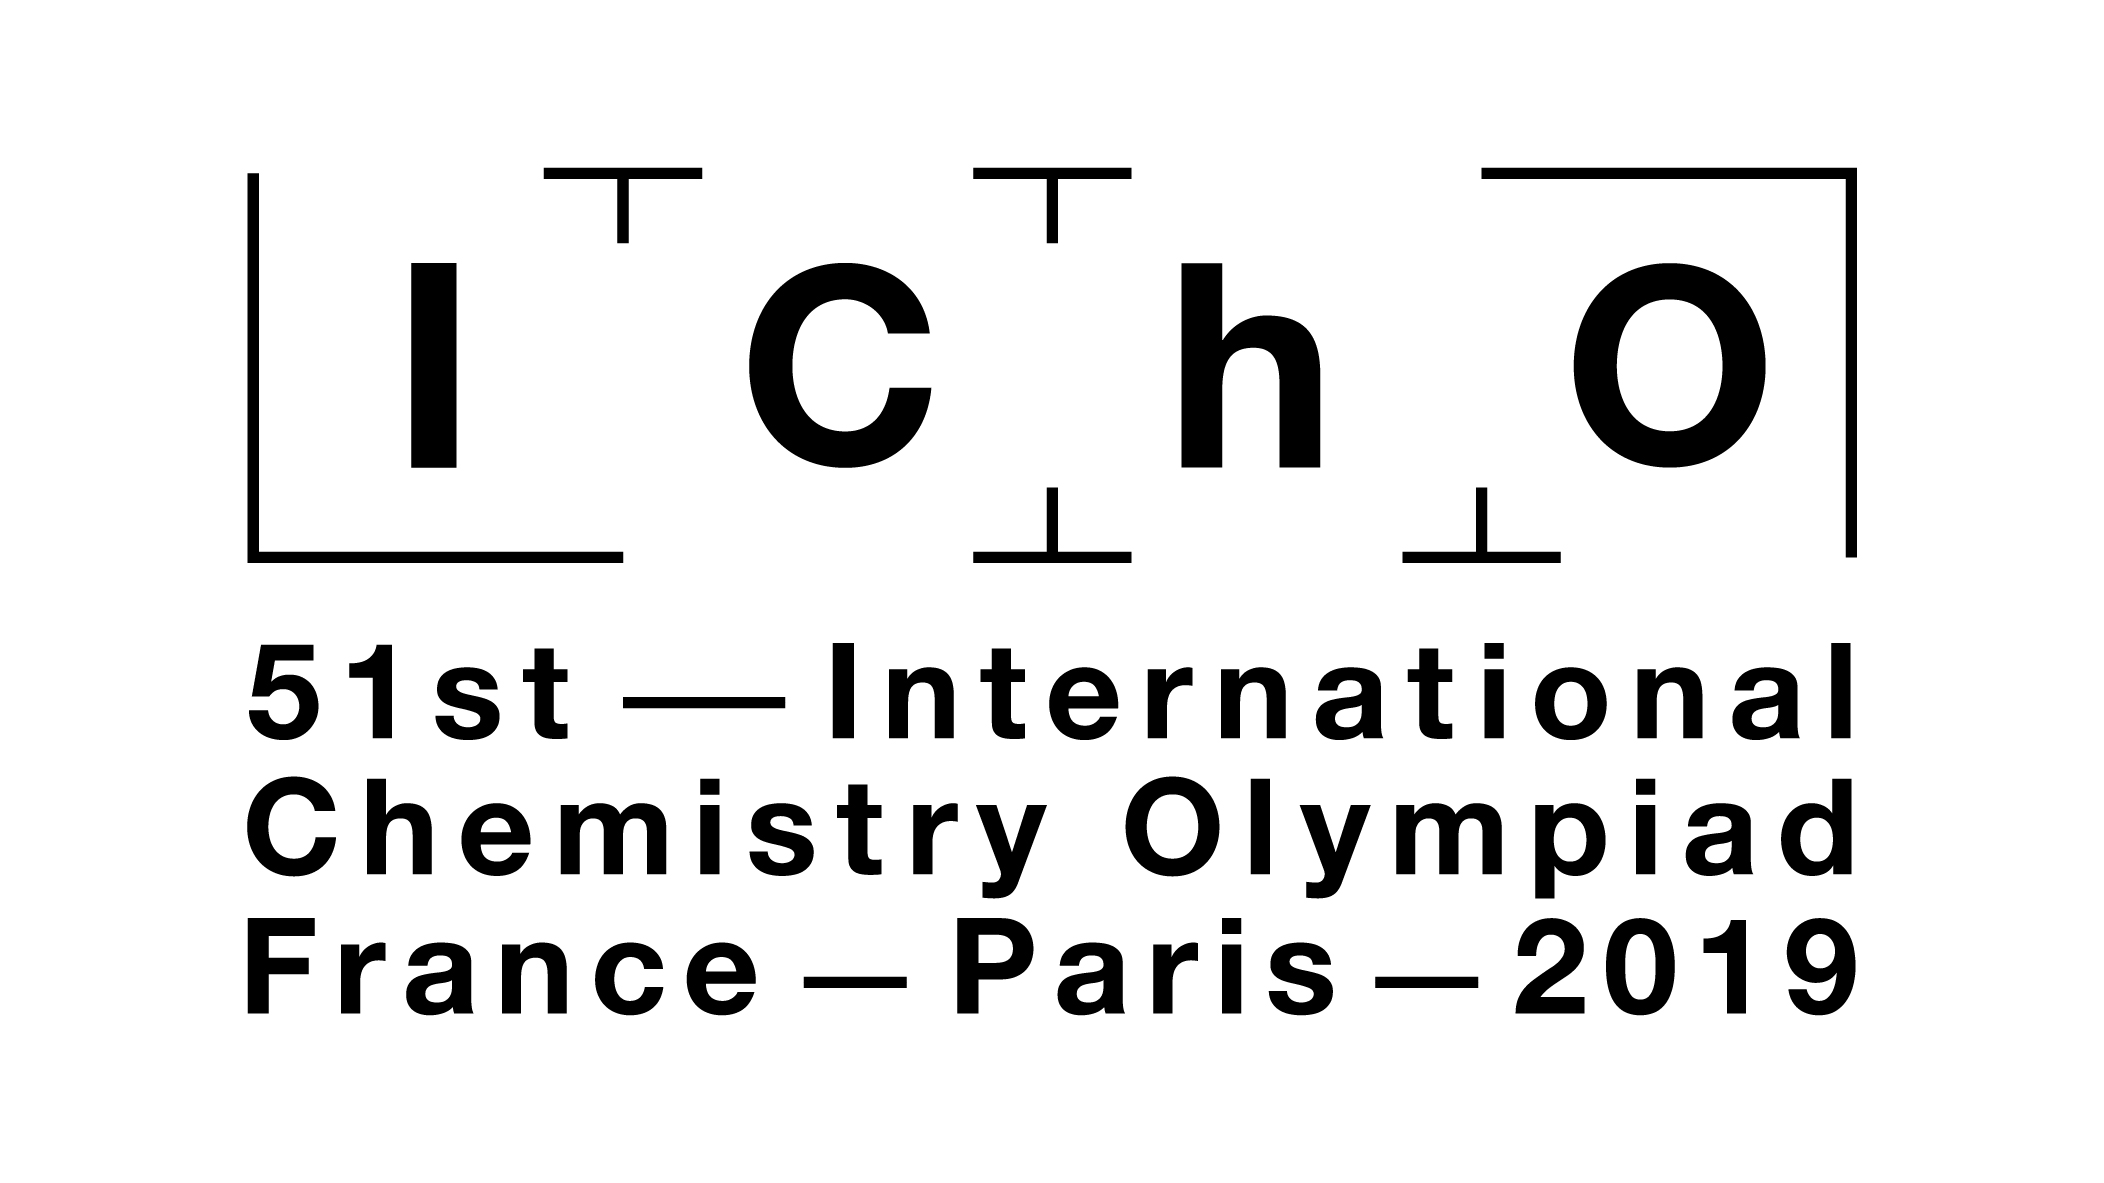 International Chemistry Olympiad Experience – Part One